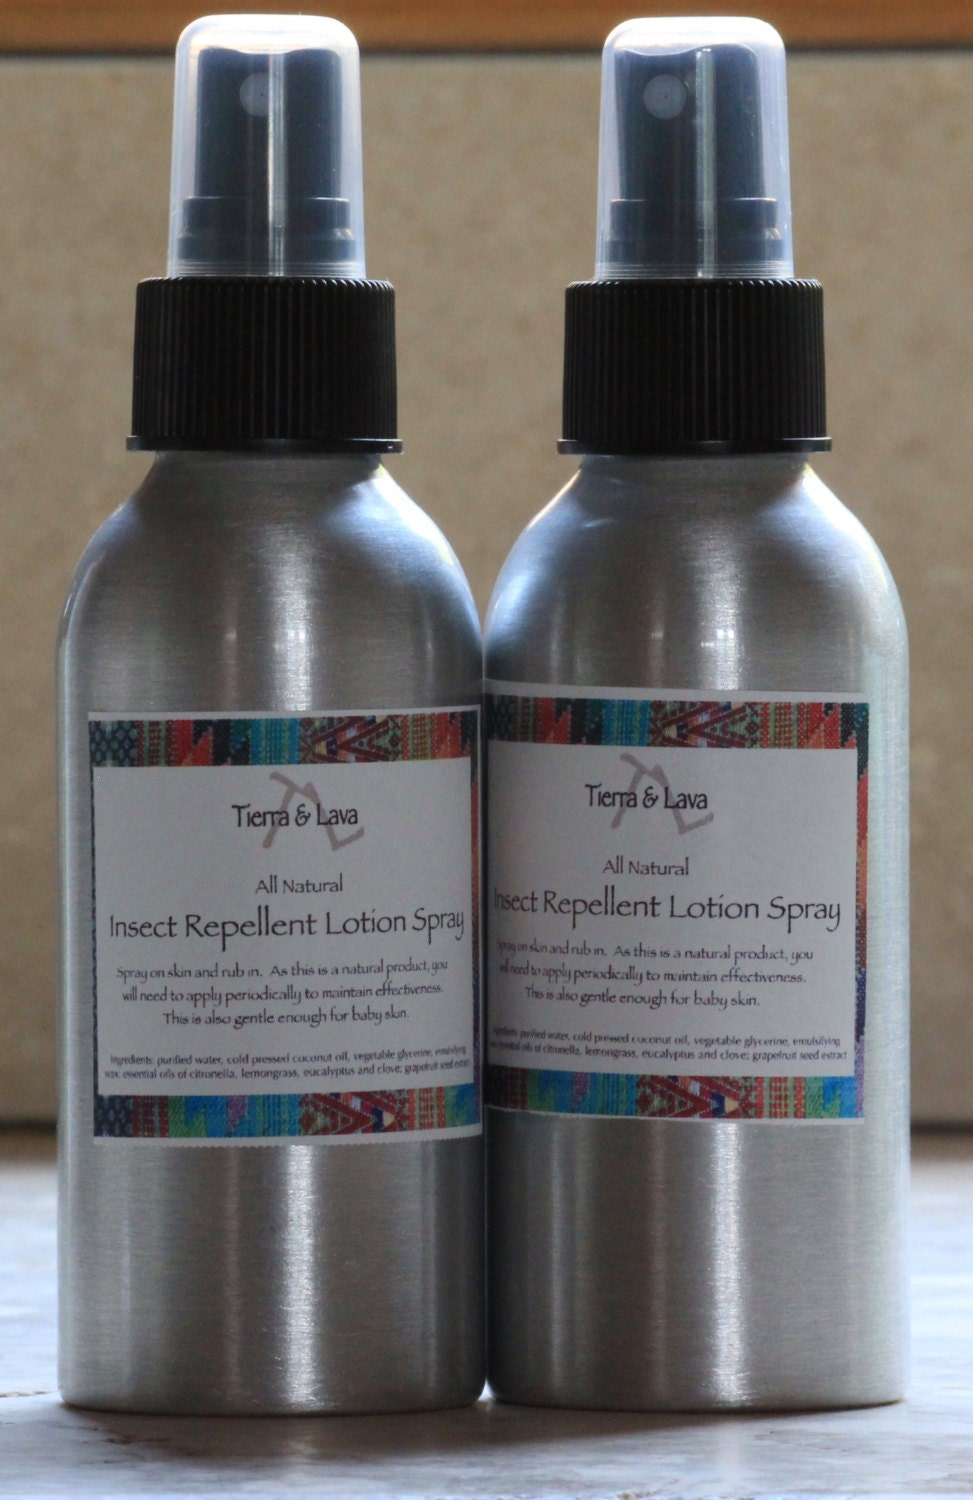 Lemongrass Zest Insect Repellent Lotion Spray 125ml Vegetable Glycerine 125 Ml Zoom